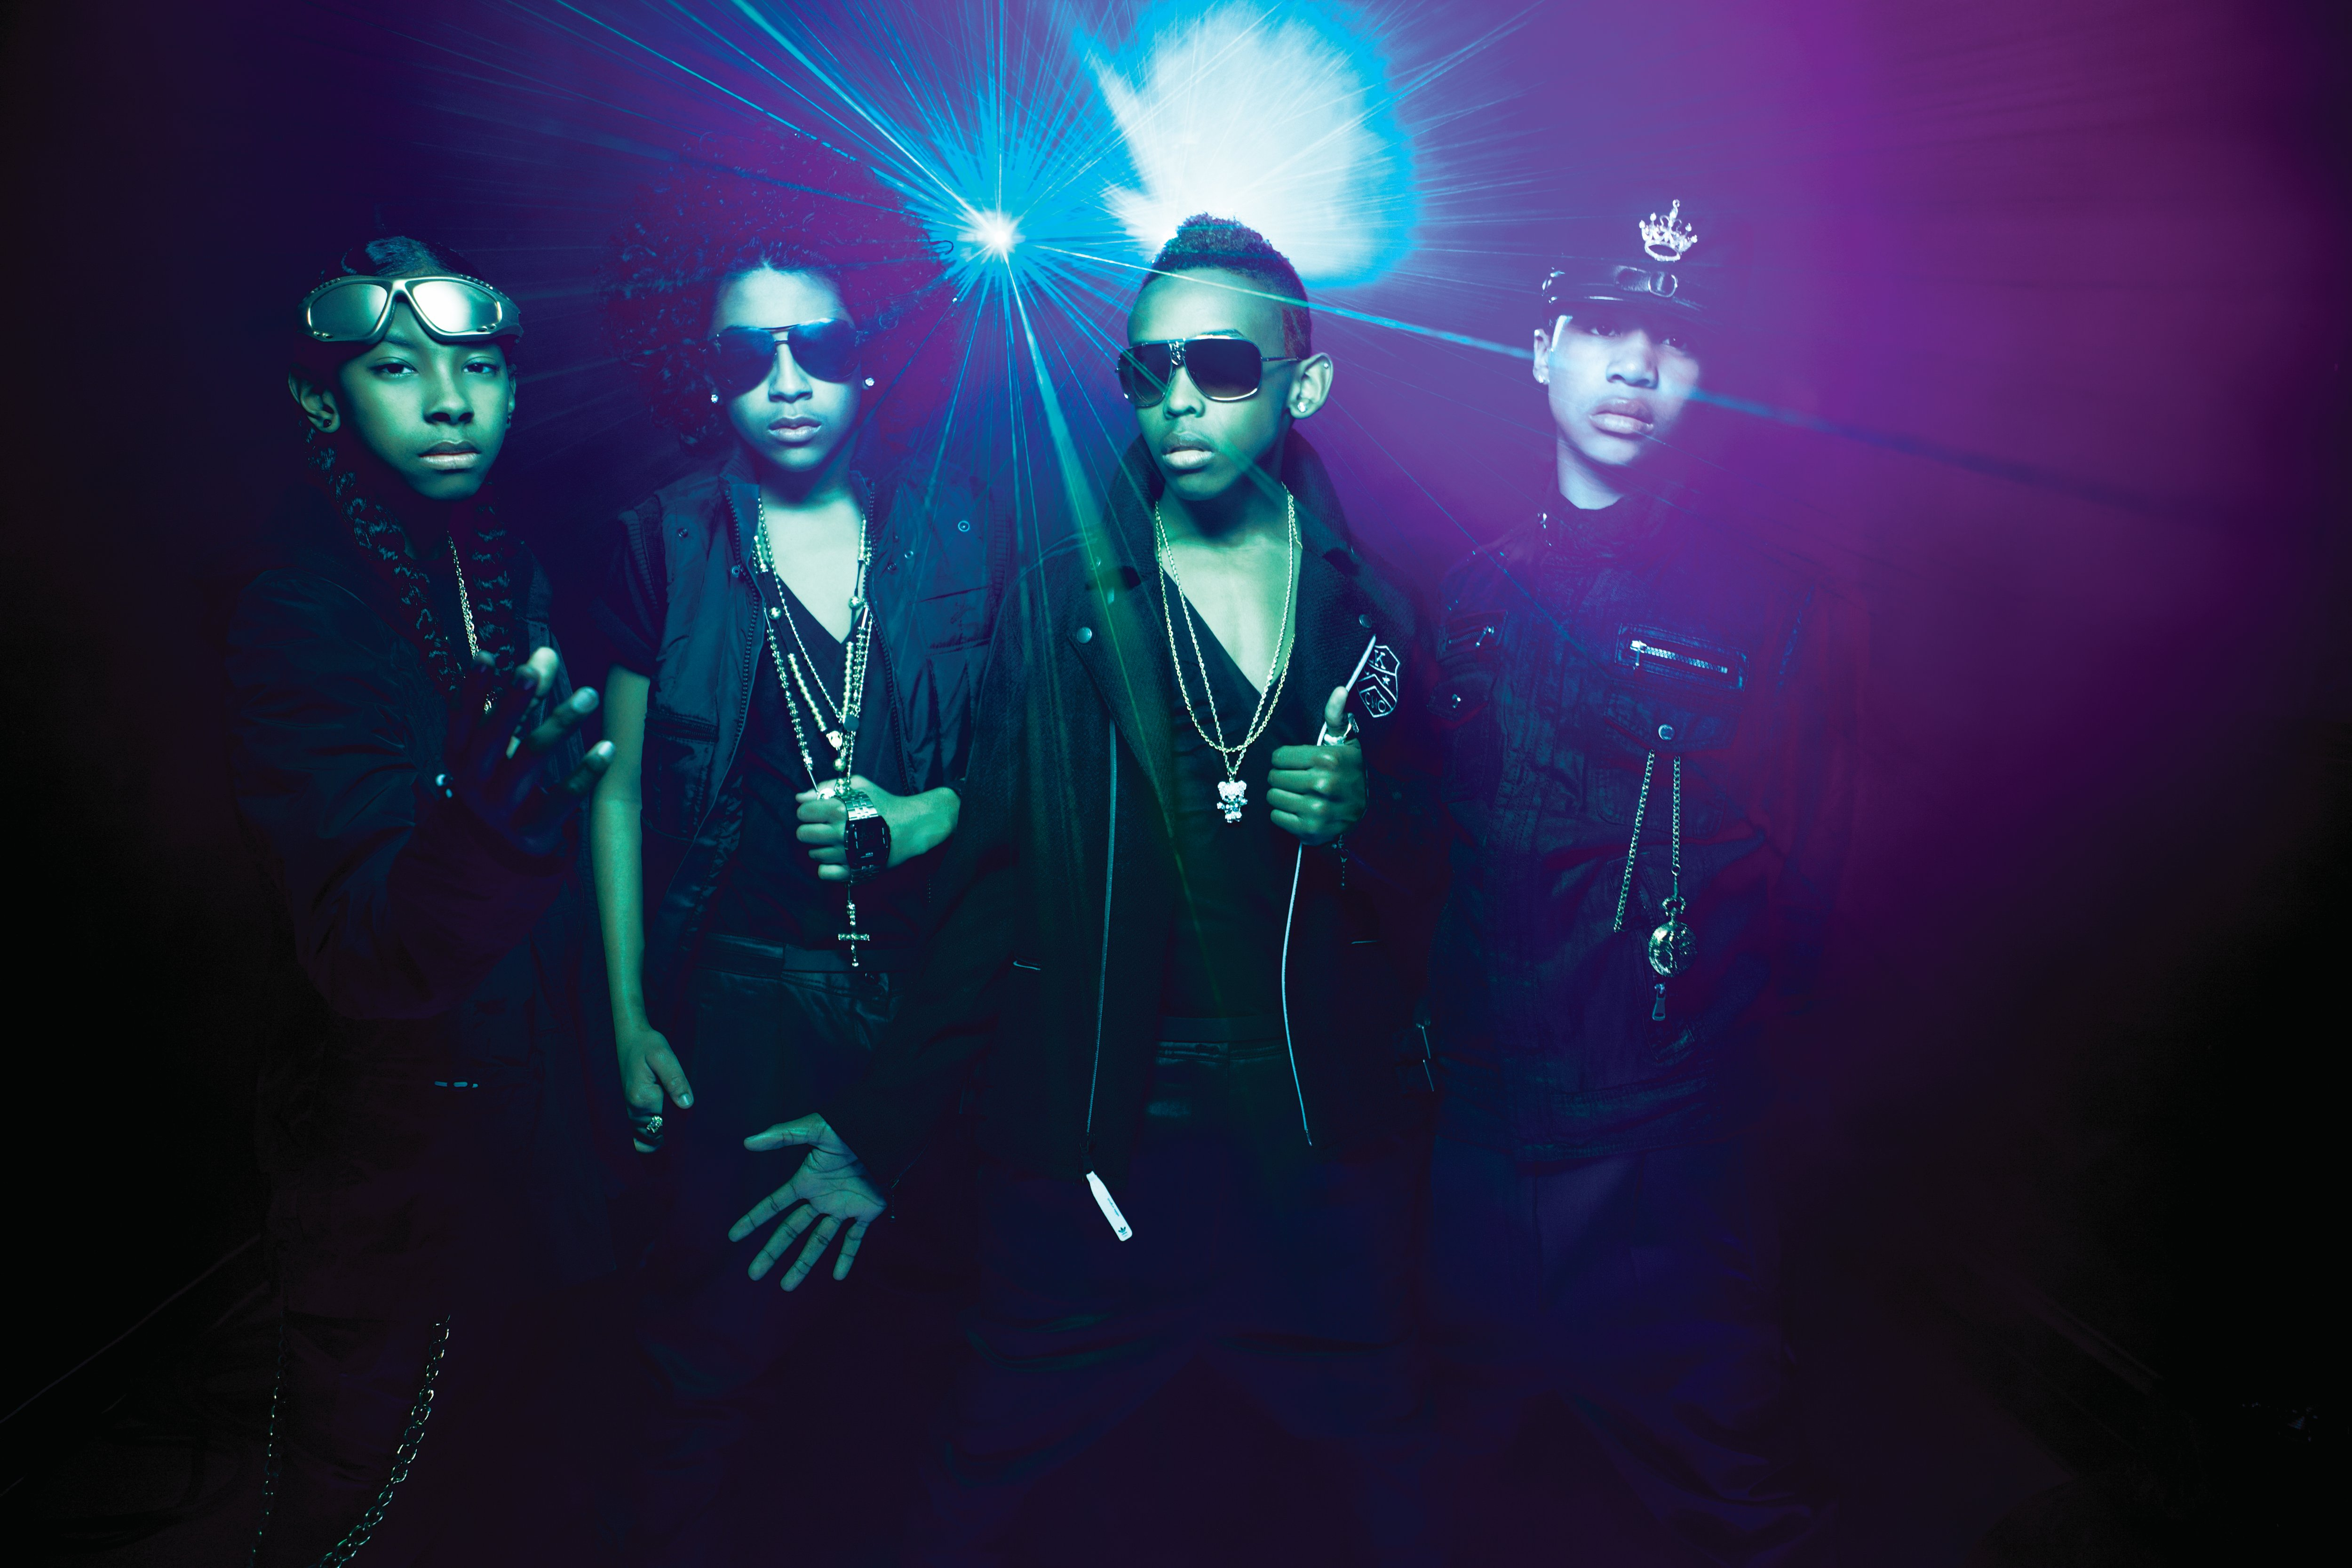 Here Is Your Chance To Win 2 Tickets + Meet & Greet @MindlessBhavior (10/8/11) Sponsored By Muve Music